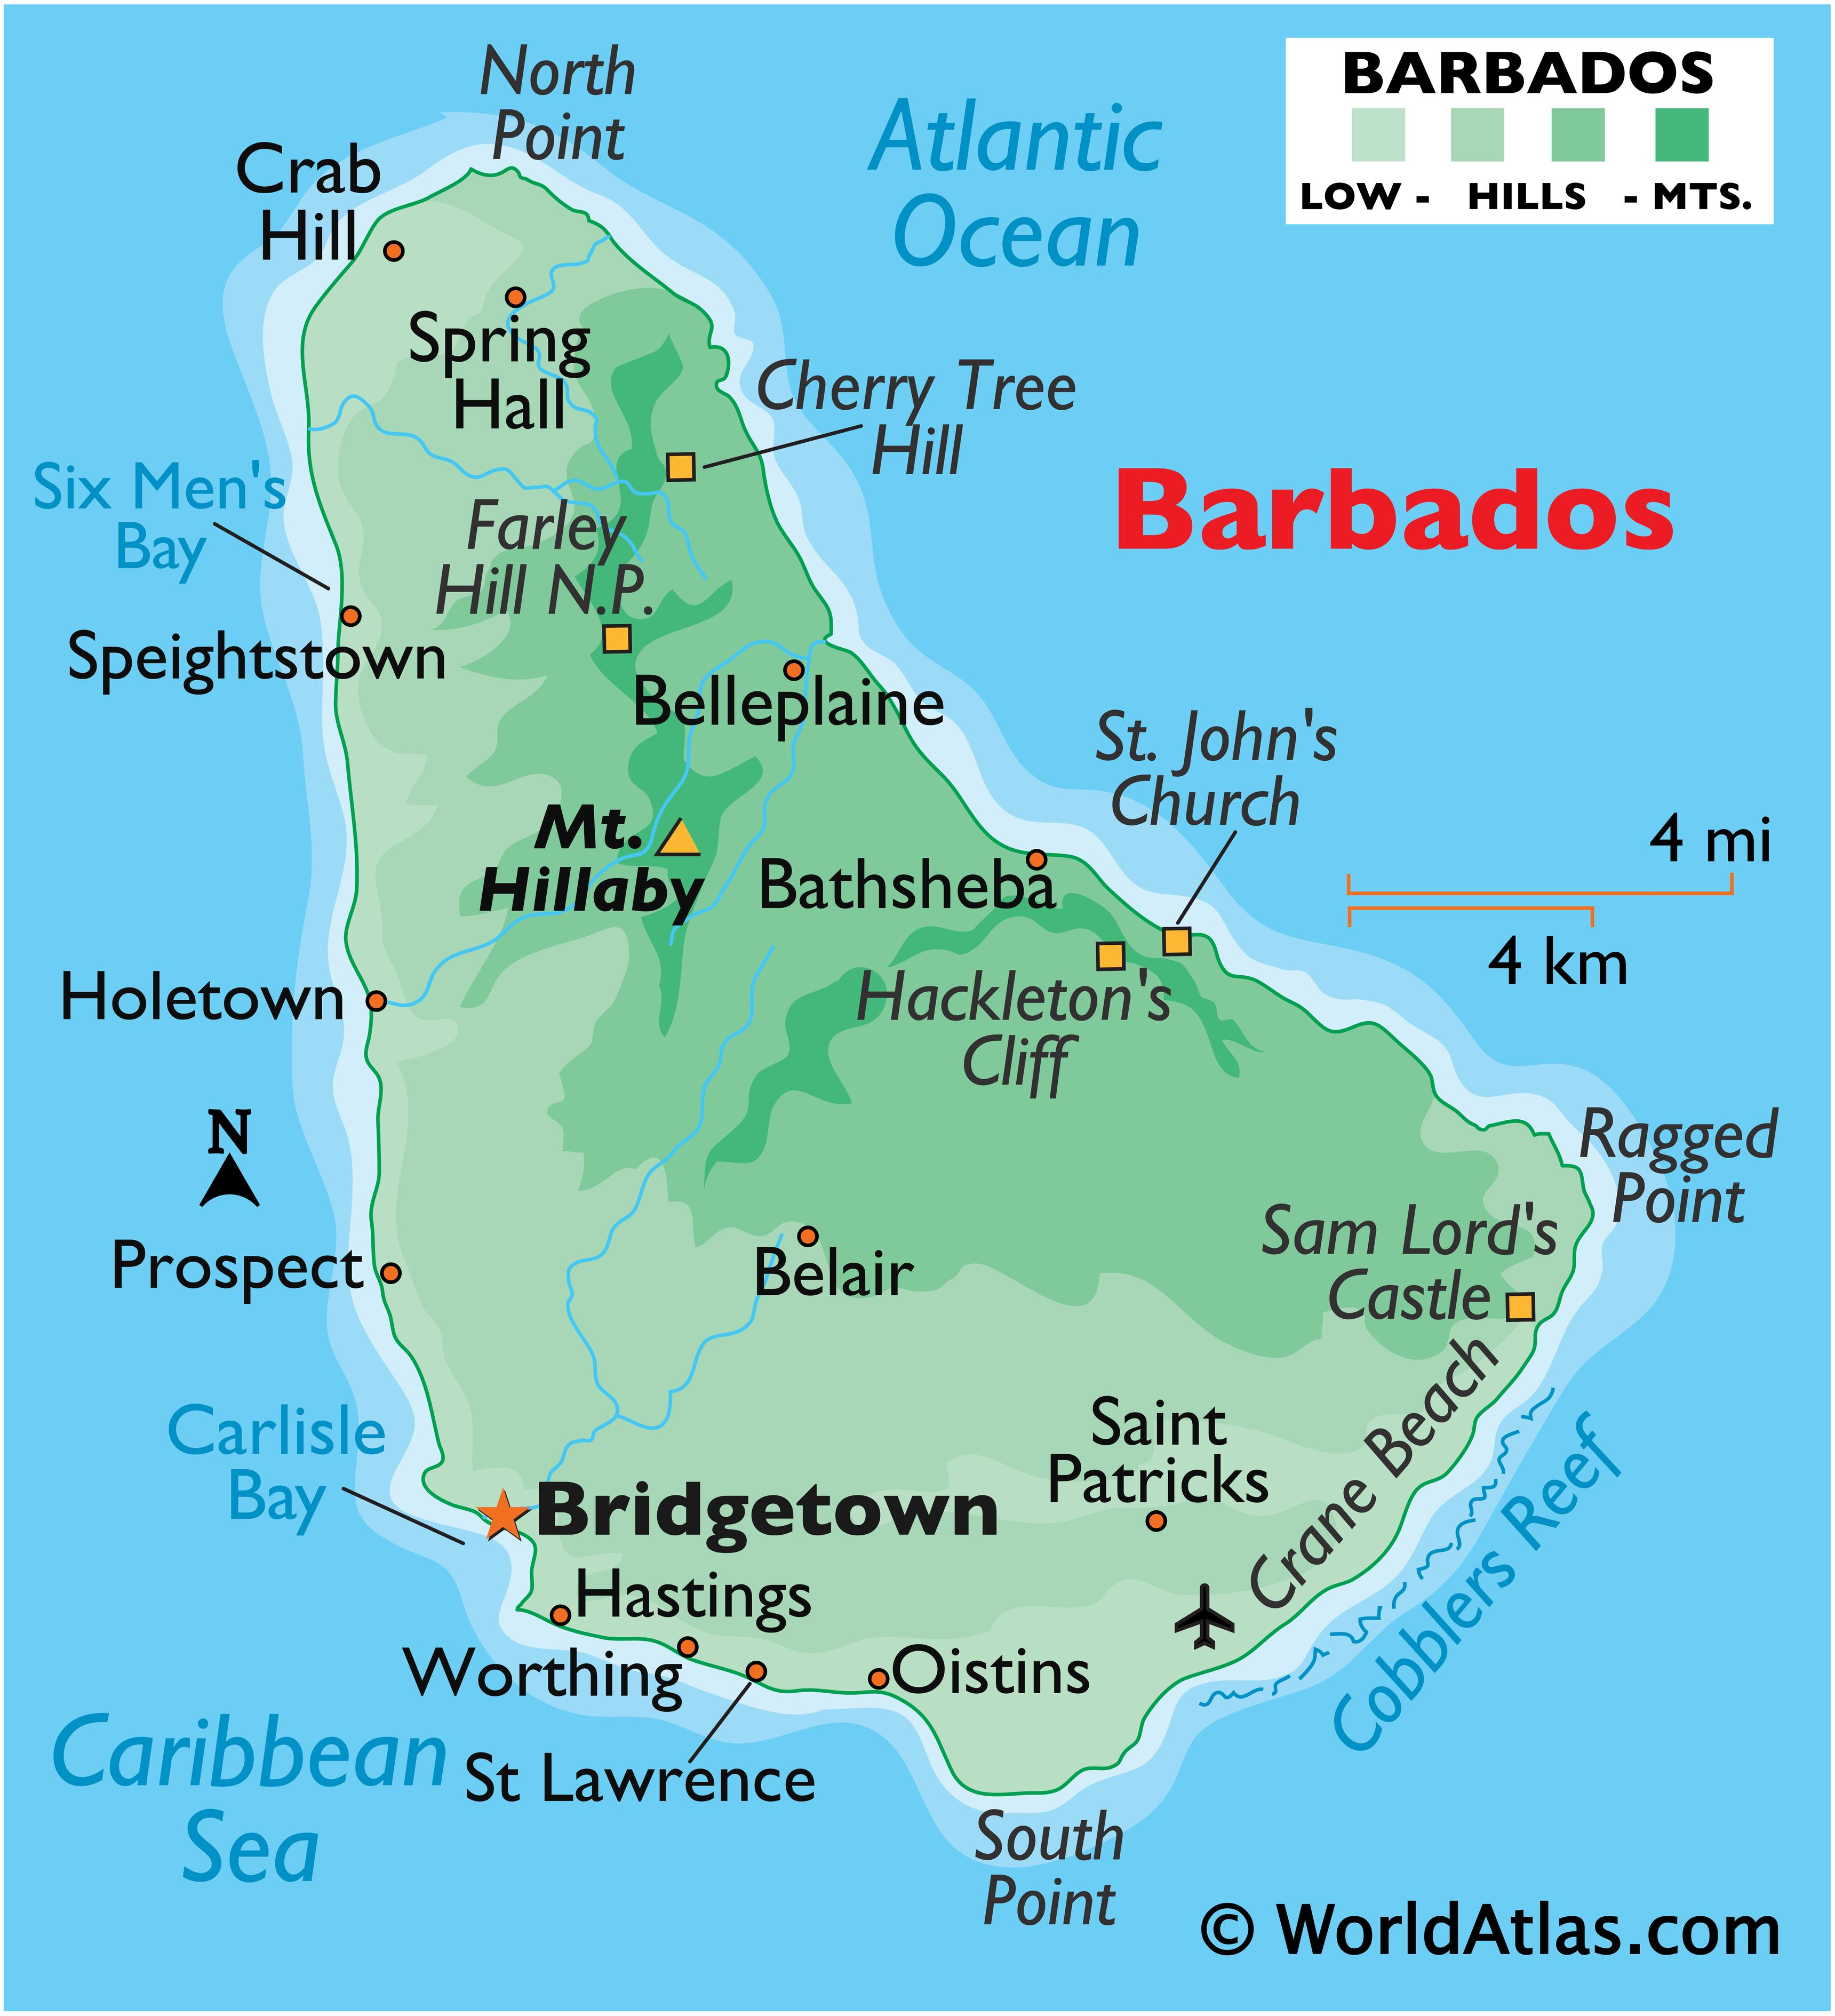 Physical Map of Barbados showing relief, highest point, important settlements, extreme points, and surrounding water features.